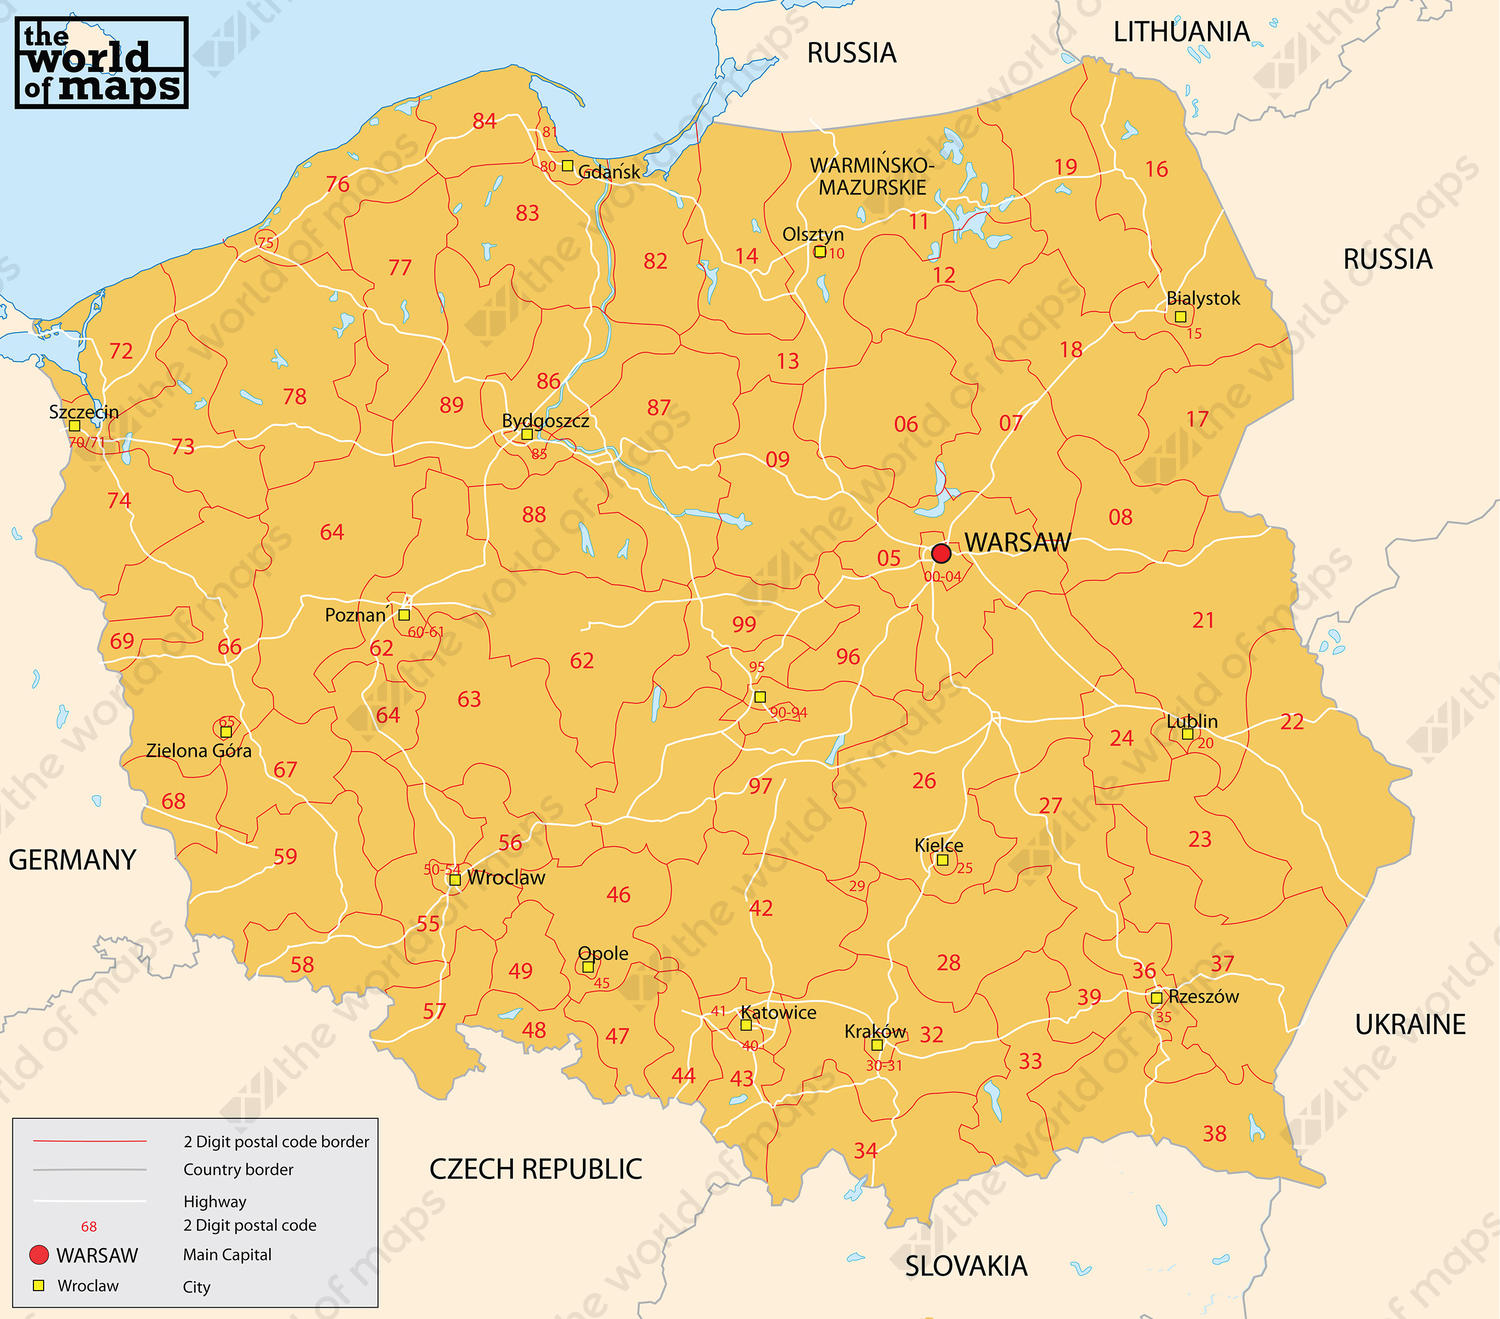 Capital Of Poland Map.Digital Postcode Map Poland 2 Digit 202 The World Of Maps Com